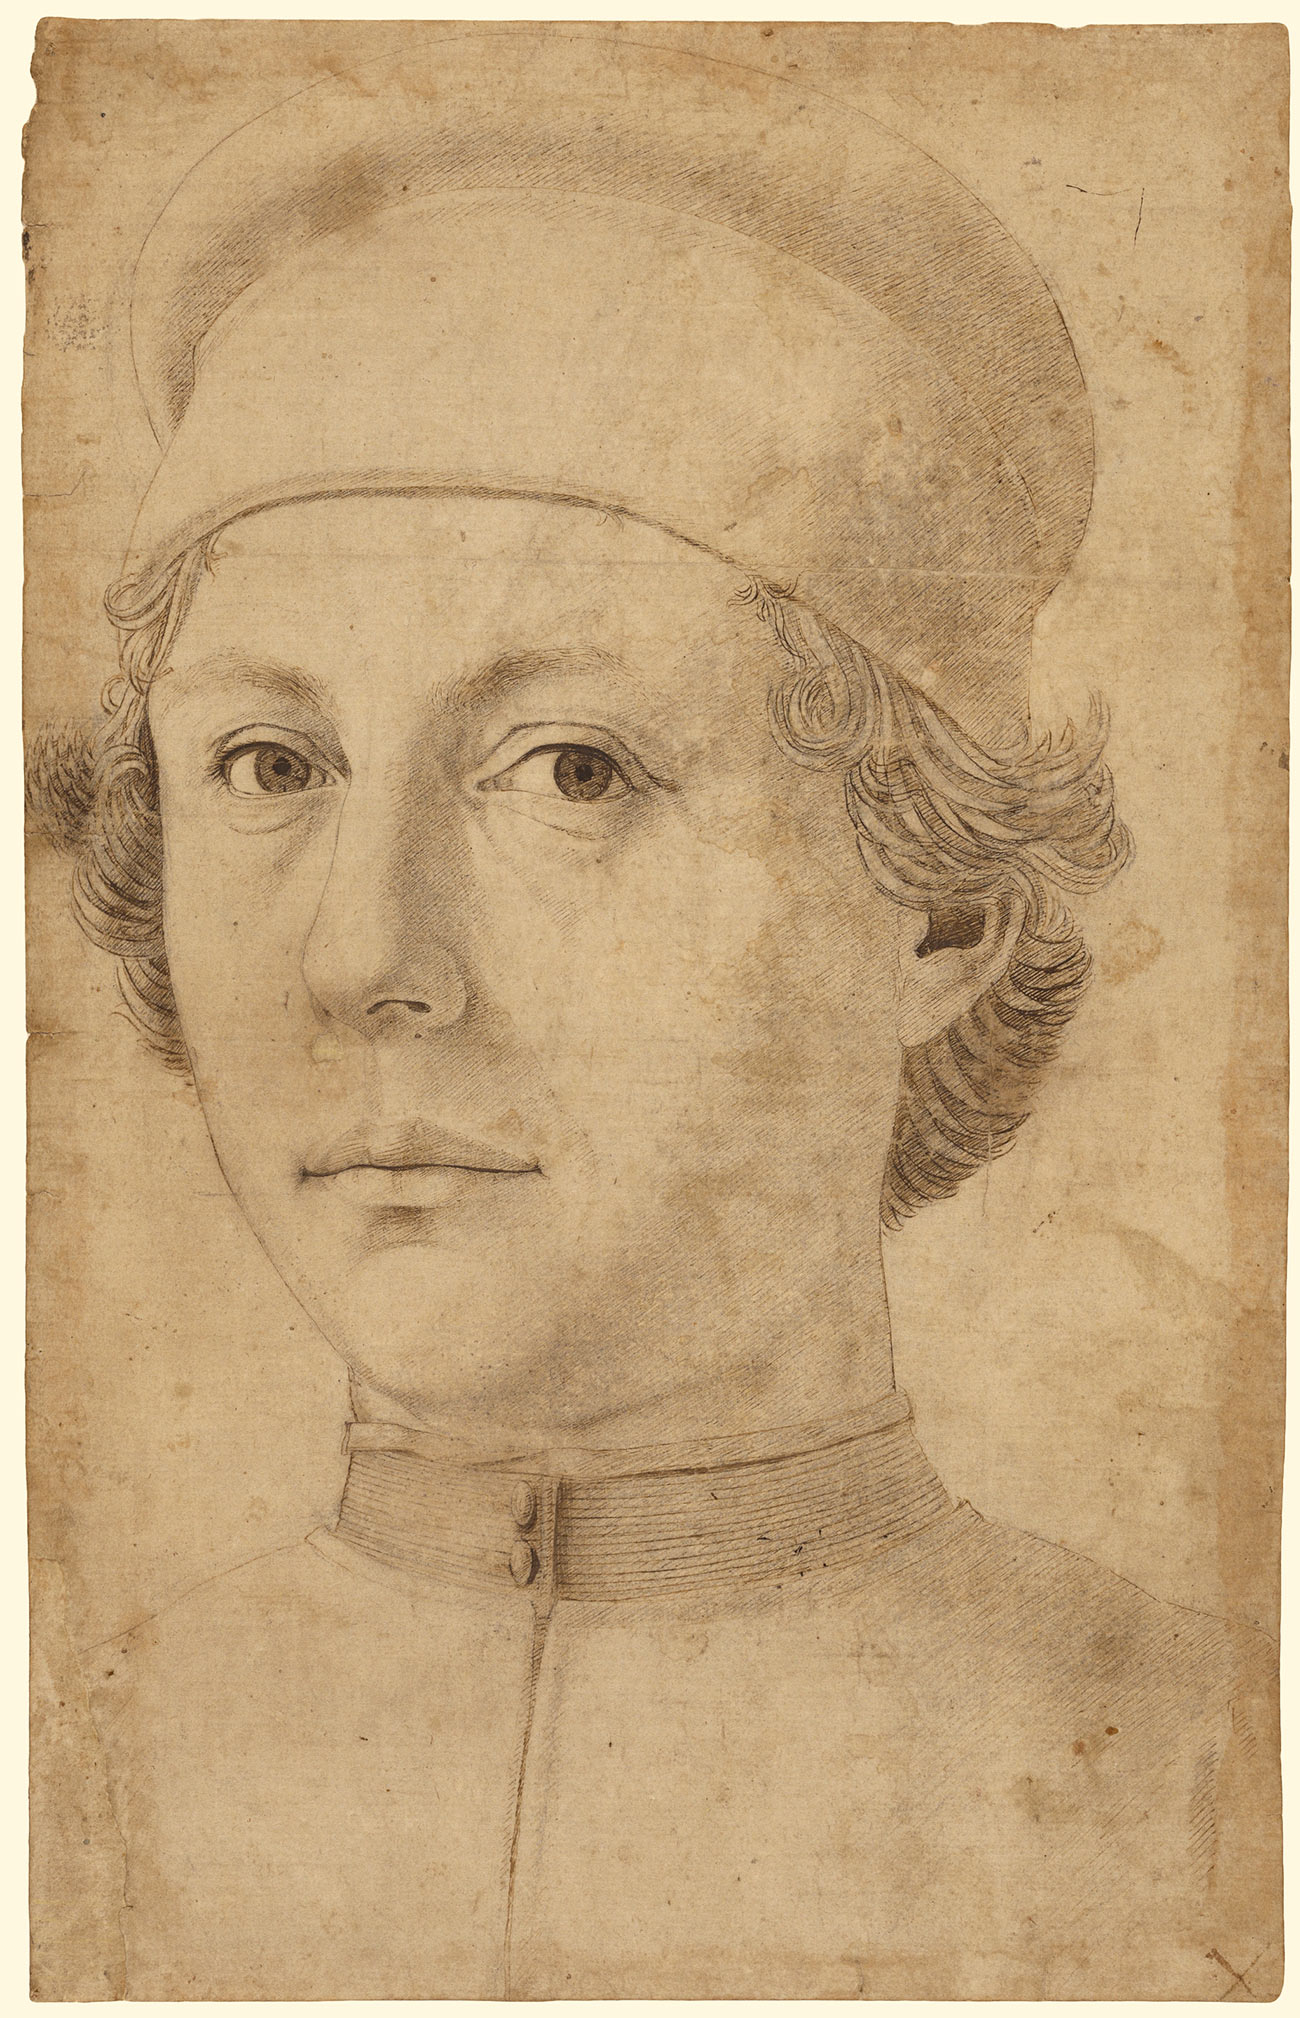 Drawing with fine lines in brown ink on sepia paper showing a young man in a snug cap, making direct eye contact with the viewer